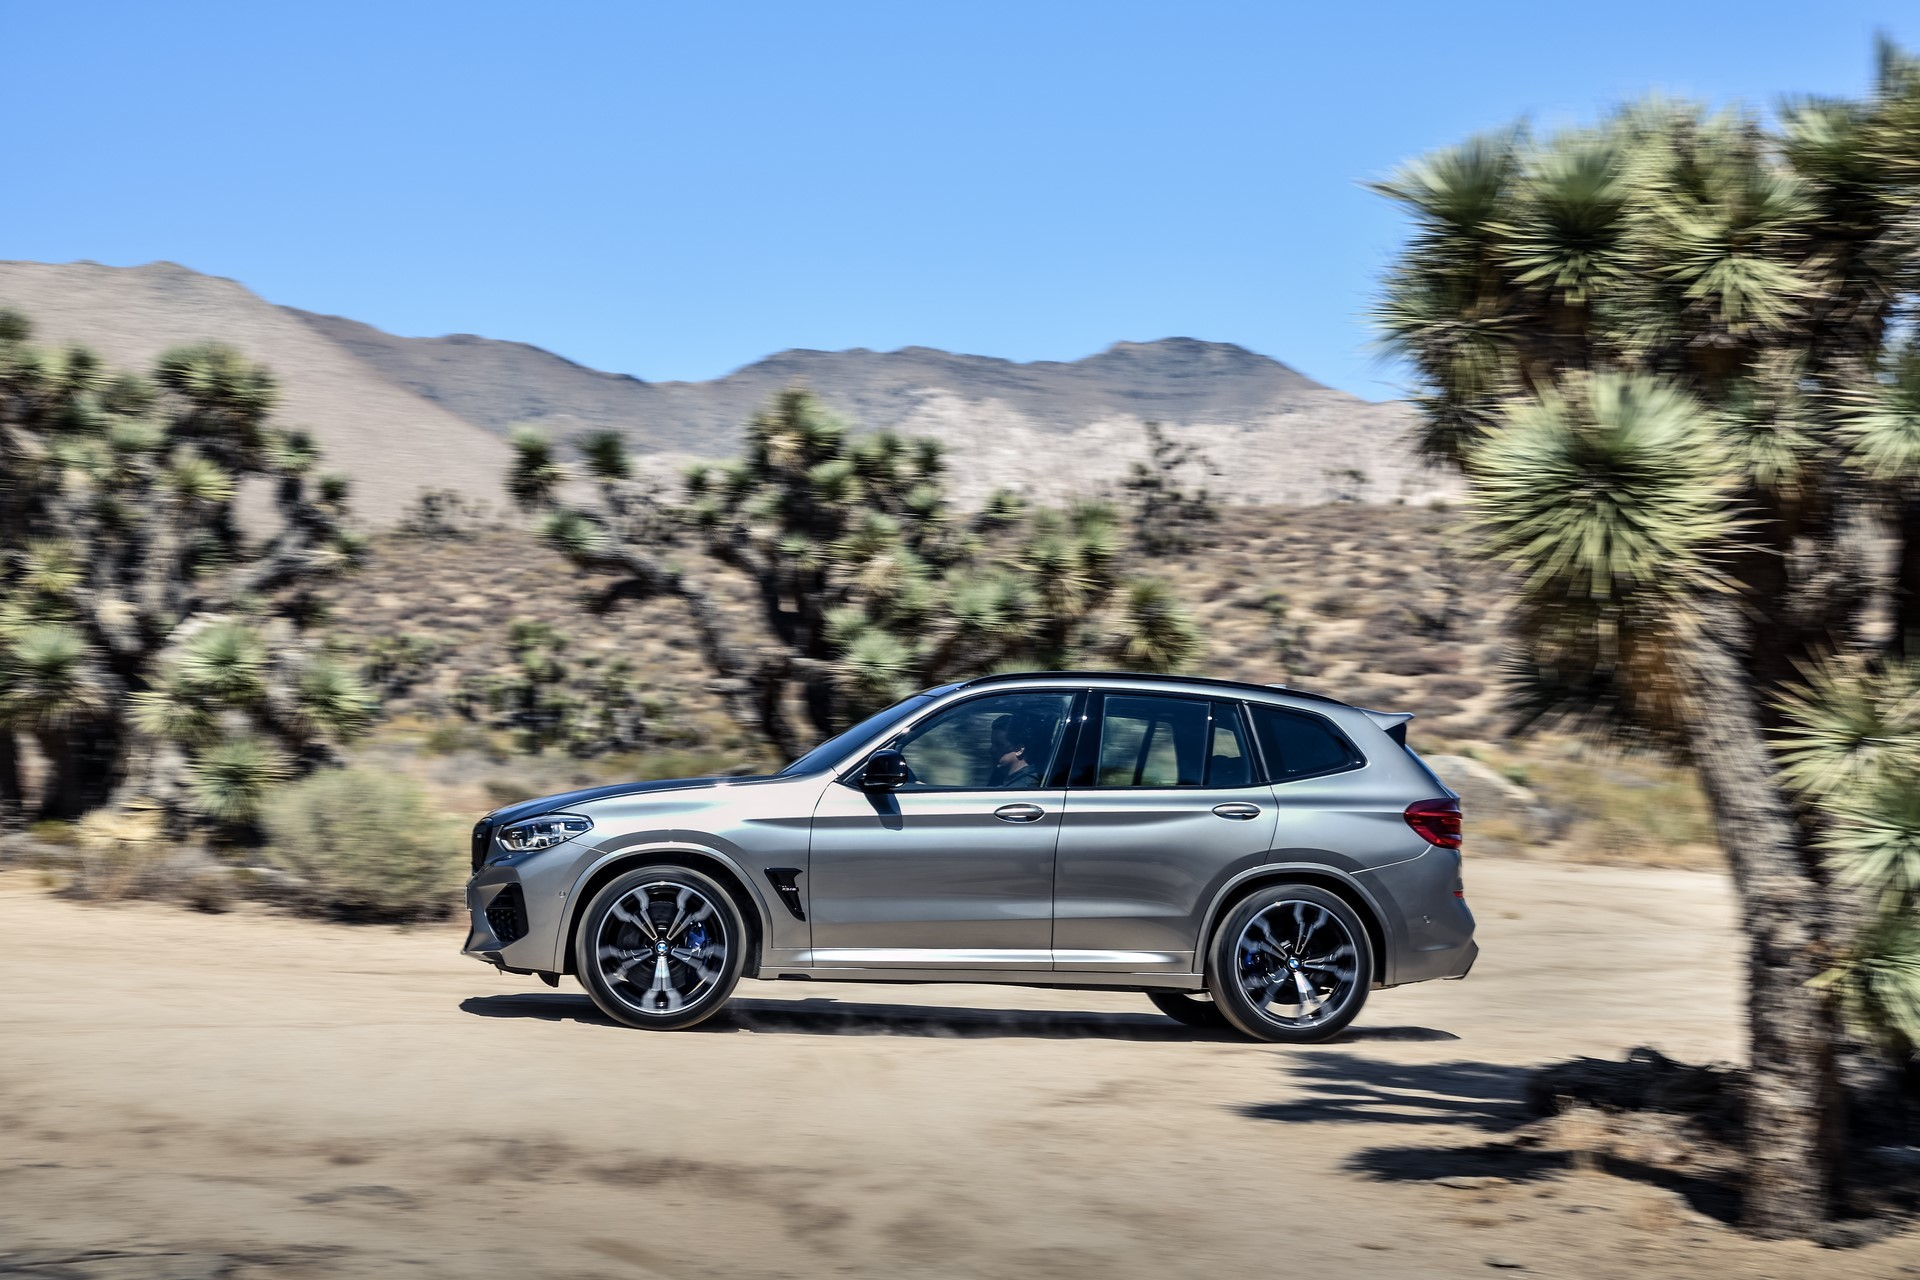 BMW X3 M and X4 M 2019 (38)